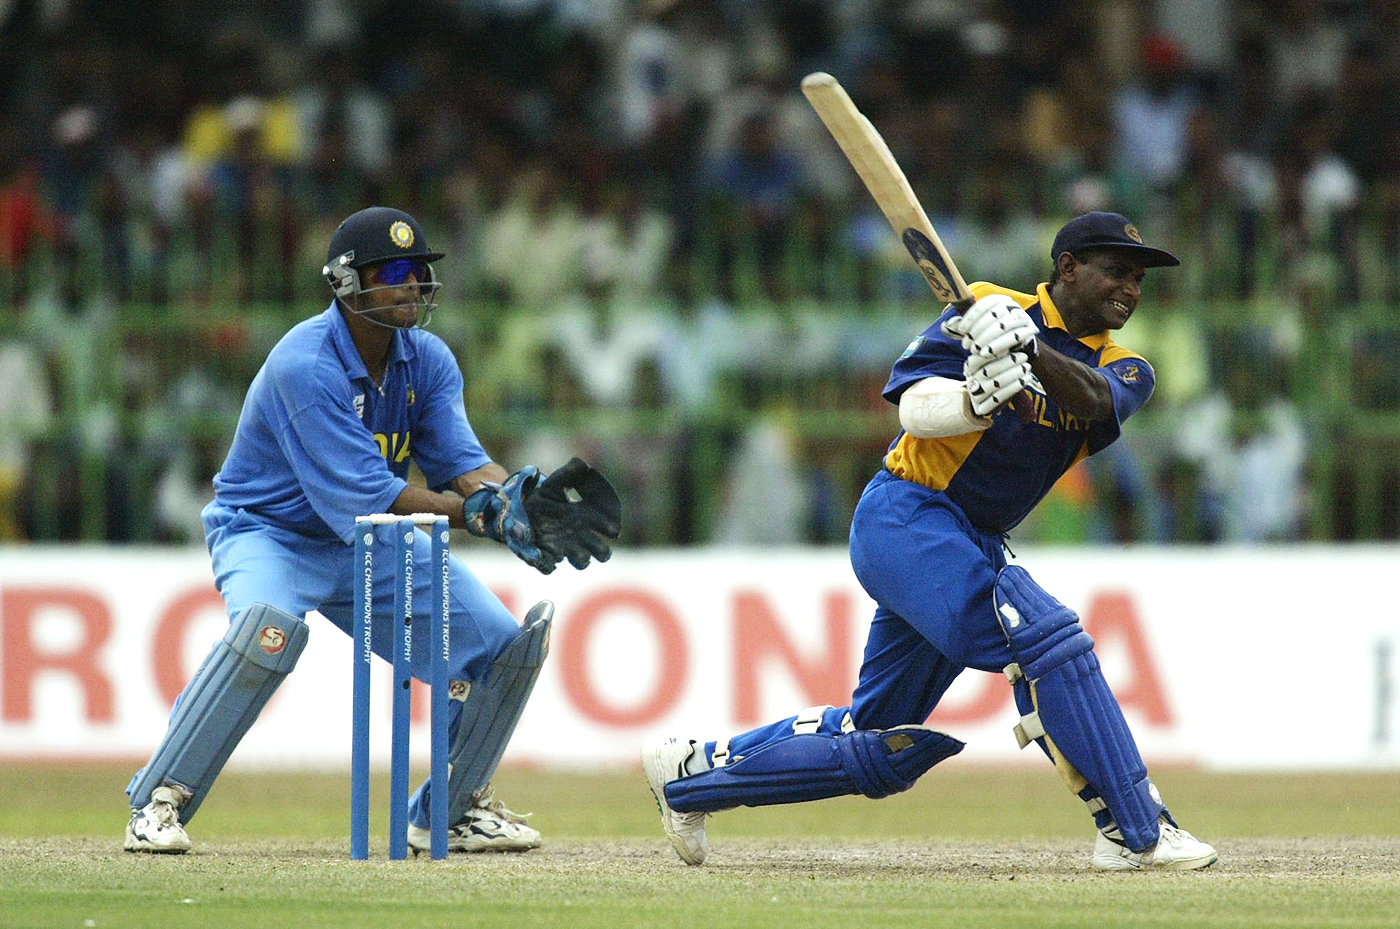 Sanath Jayasuriya on his way to 74